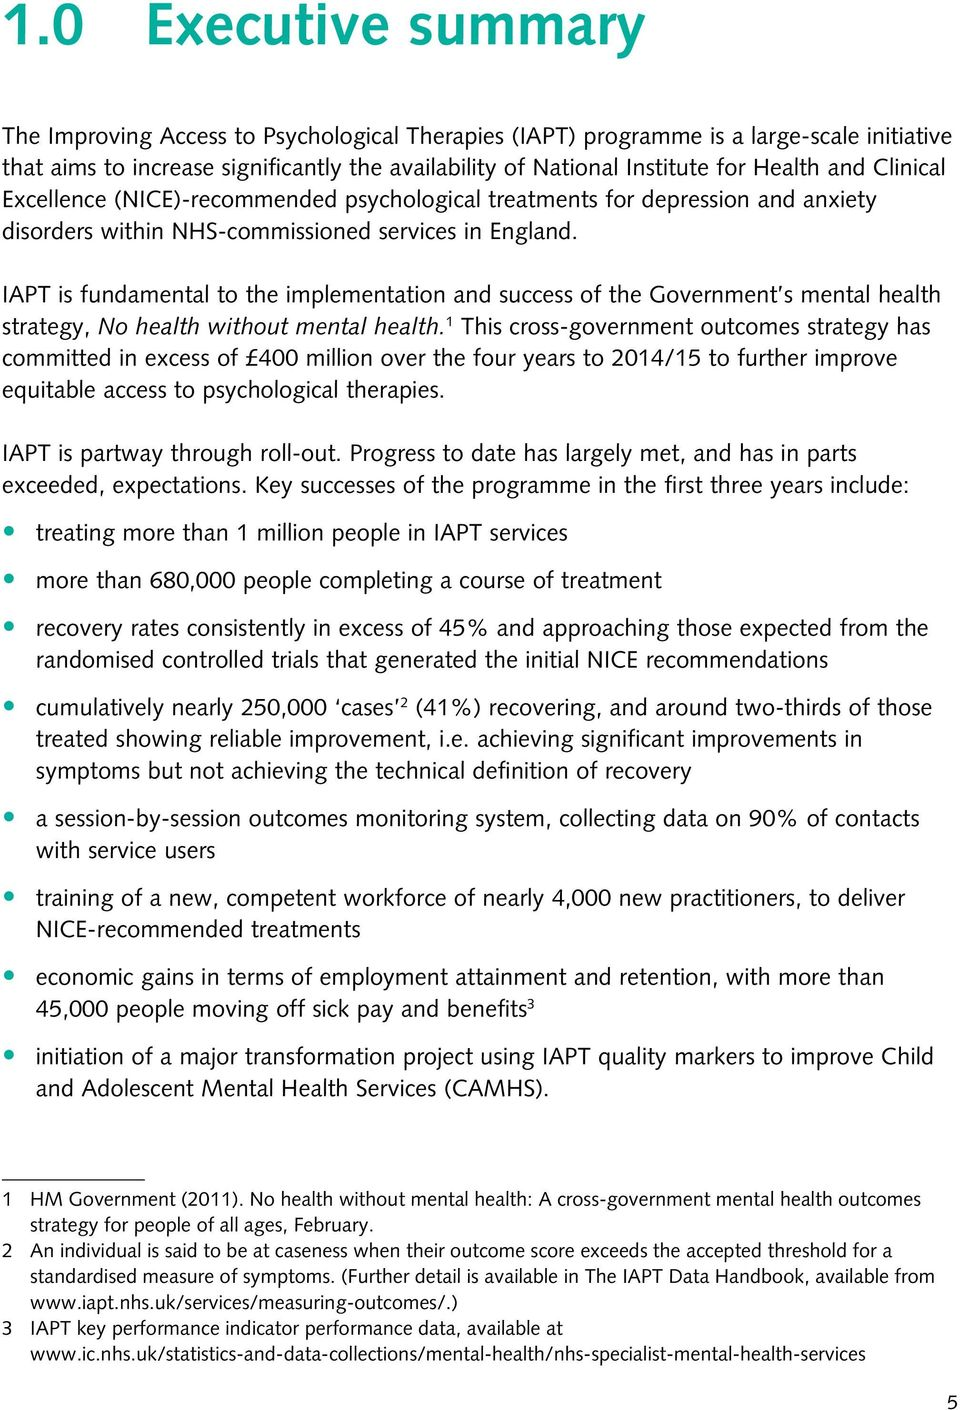 IAPT is fundamental to the implementation and success of the Government s mental health strategy, No health without mental health.